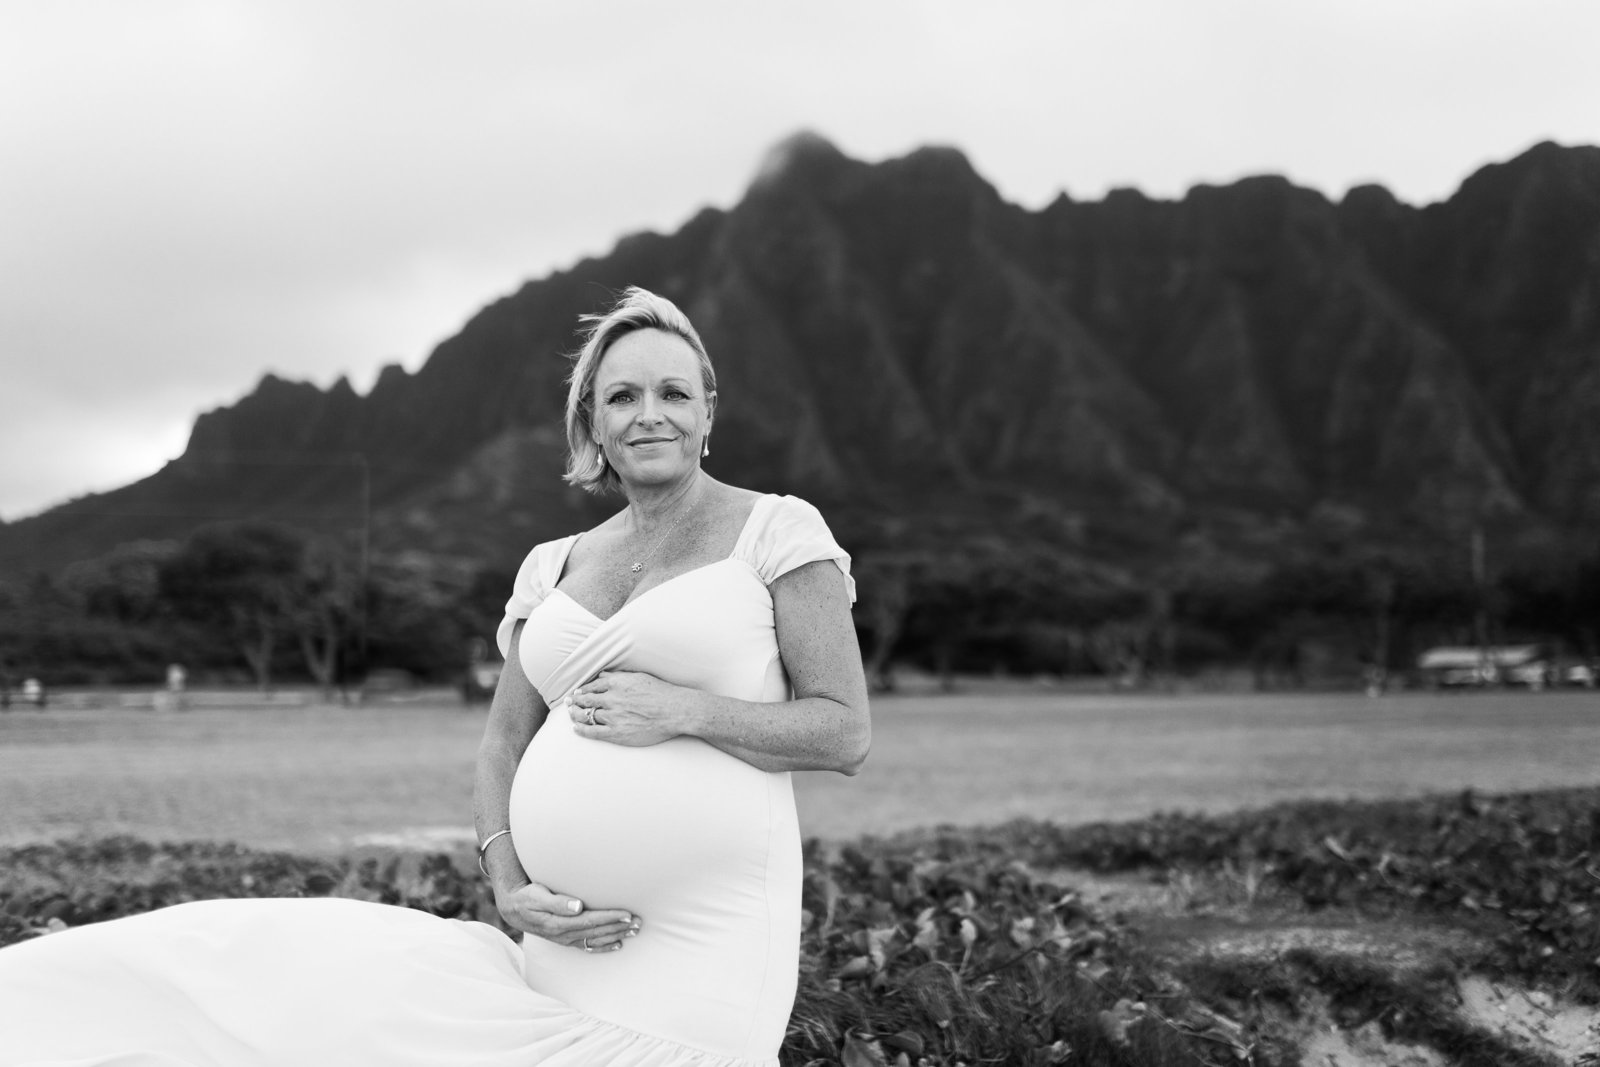 maternity Photoshoot Kualoa Beach Oahu Hawaii Brooke flanagan Photography-6